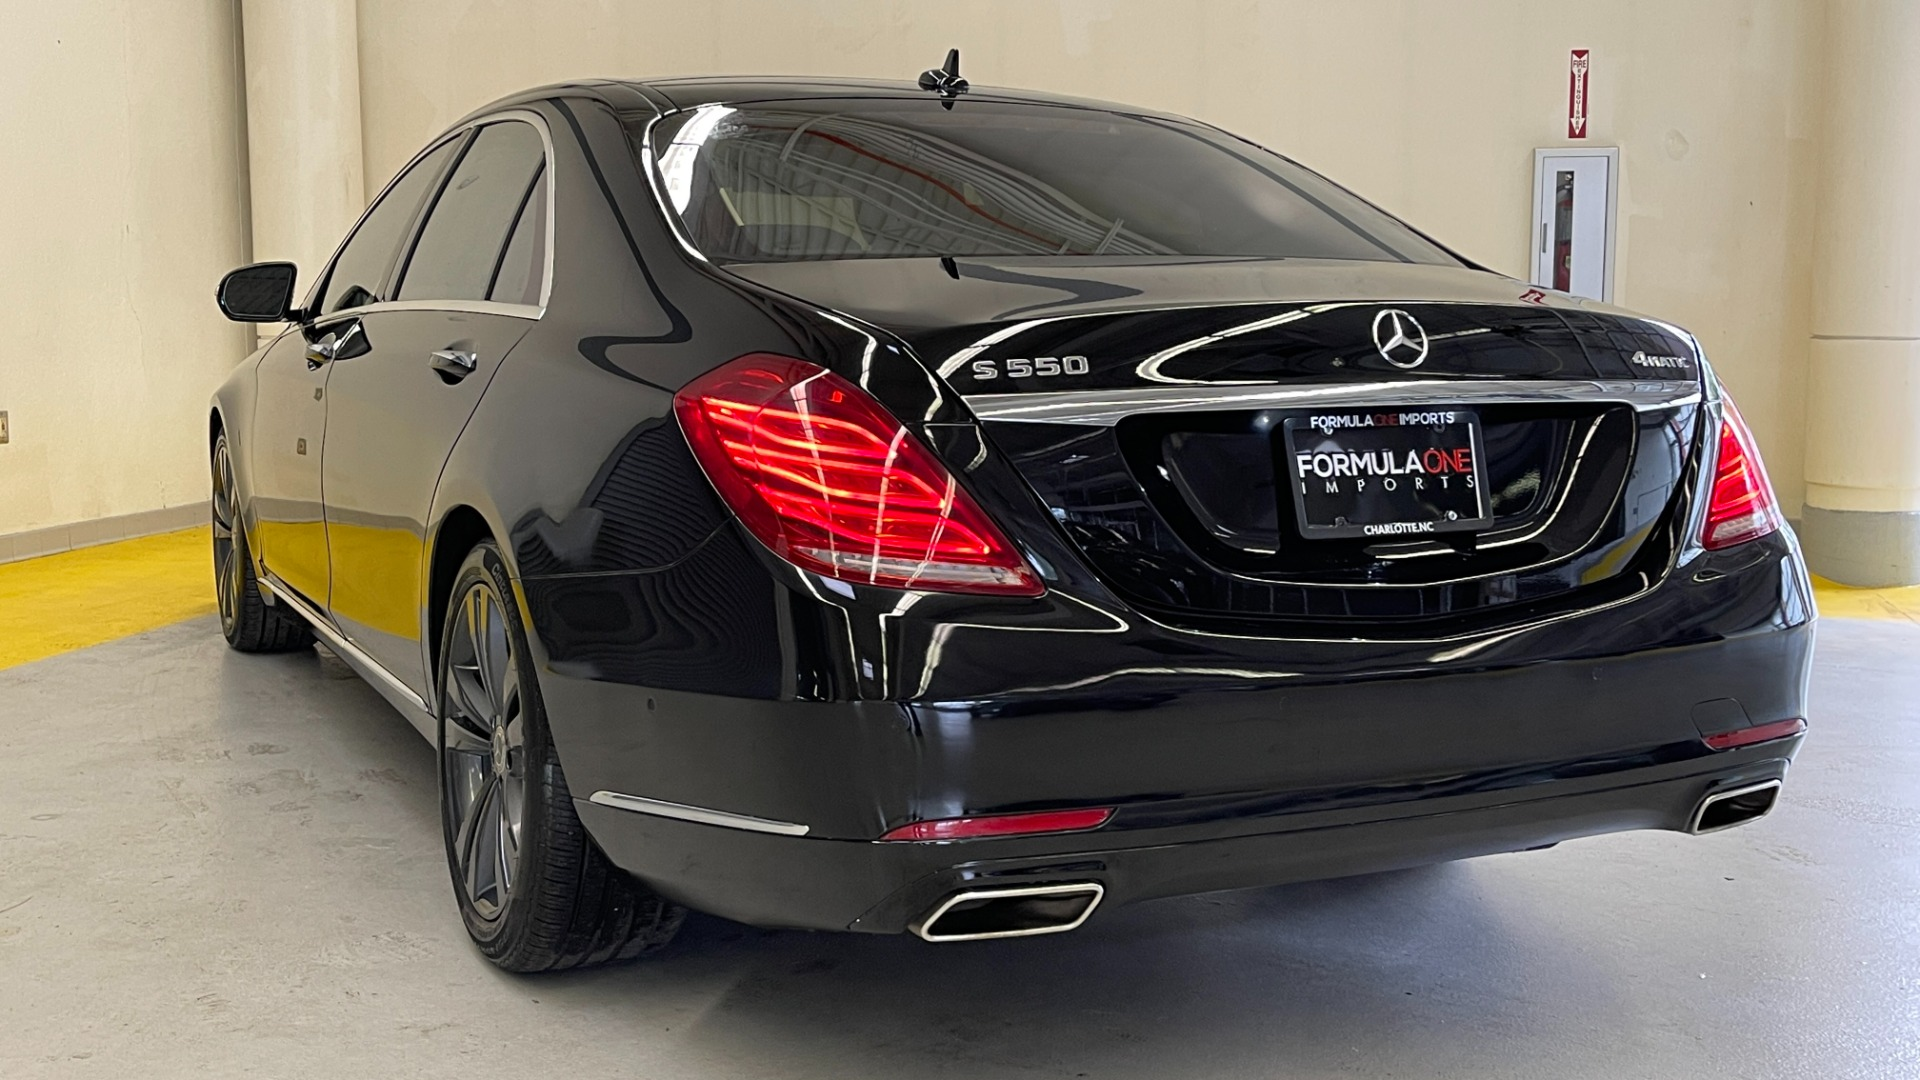 Used 2017 Mercedes-Benz S-CLASS S 550 4MATIC PREMIUM / NAV / BURMESTER / SUNROOF / REARVIEW for sale $58,995 at Formula Imports in Charlotte NC 28227 7